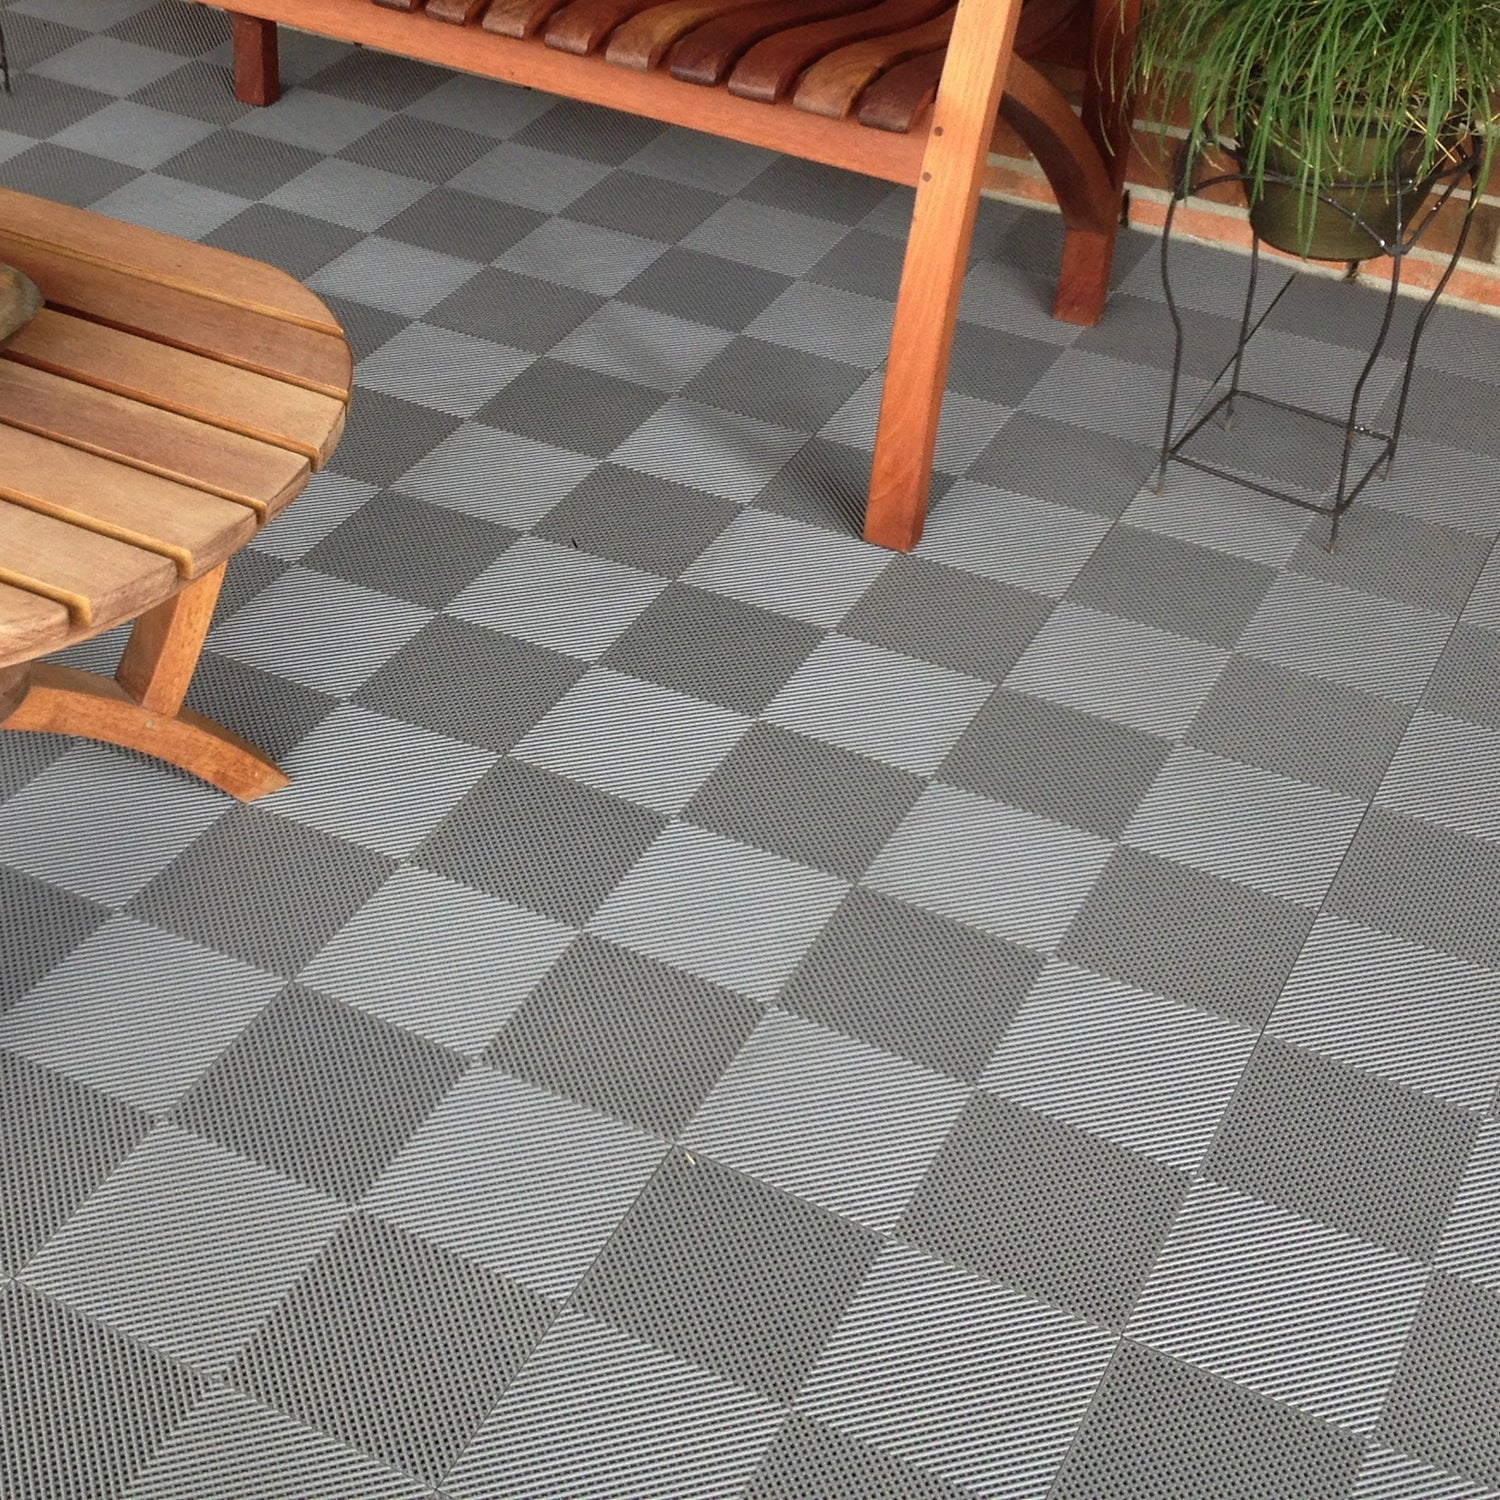 Image of: Shop Black Friday Deals On Blocktile Deck And Patio Flooring Interlocking Perforated Tiles Pack Of 30 Overstock 7549280